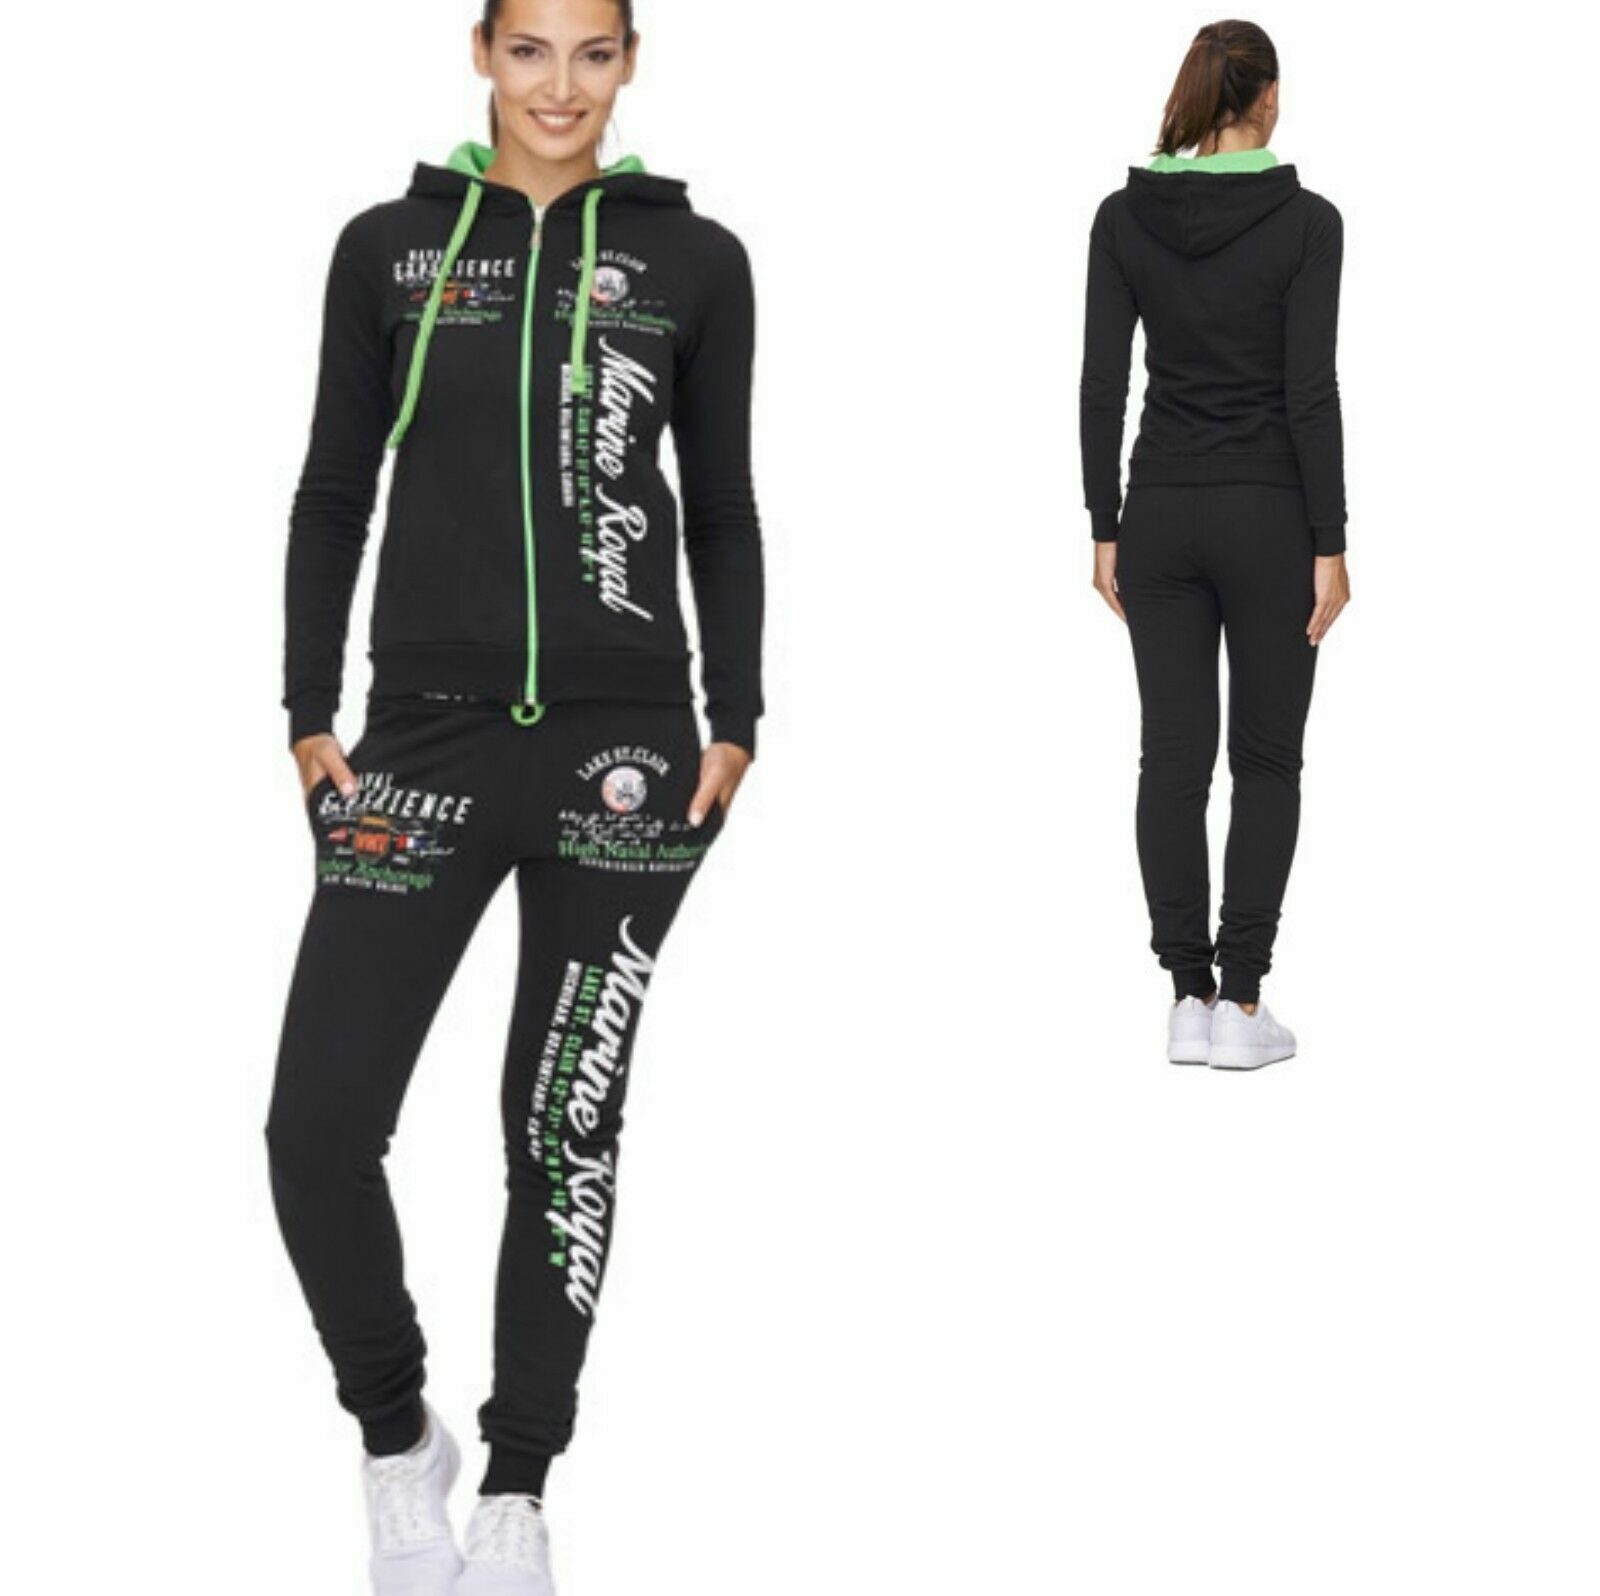 Damen Jogginganzug Jogging Hose Jacke Sportanzug Fitness training 689